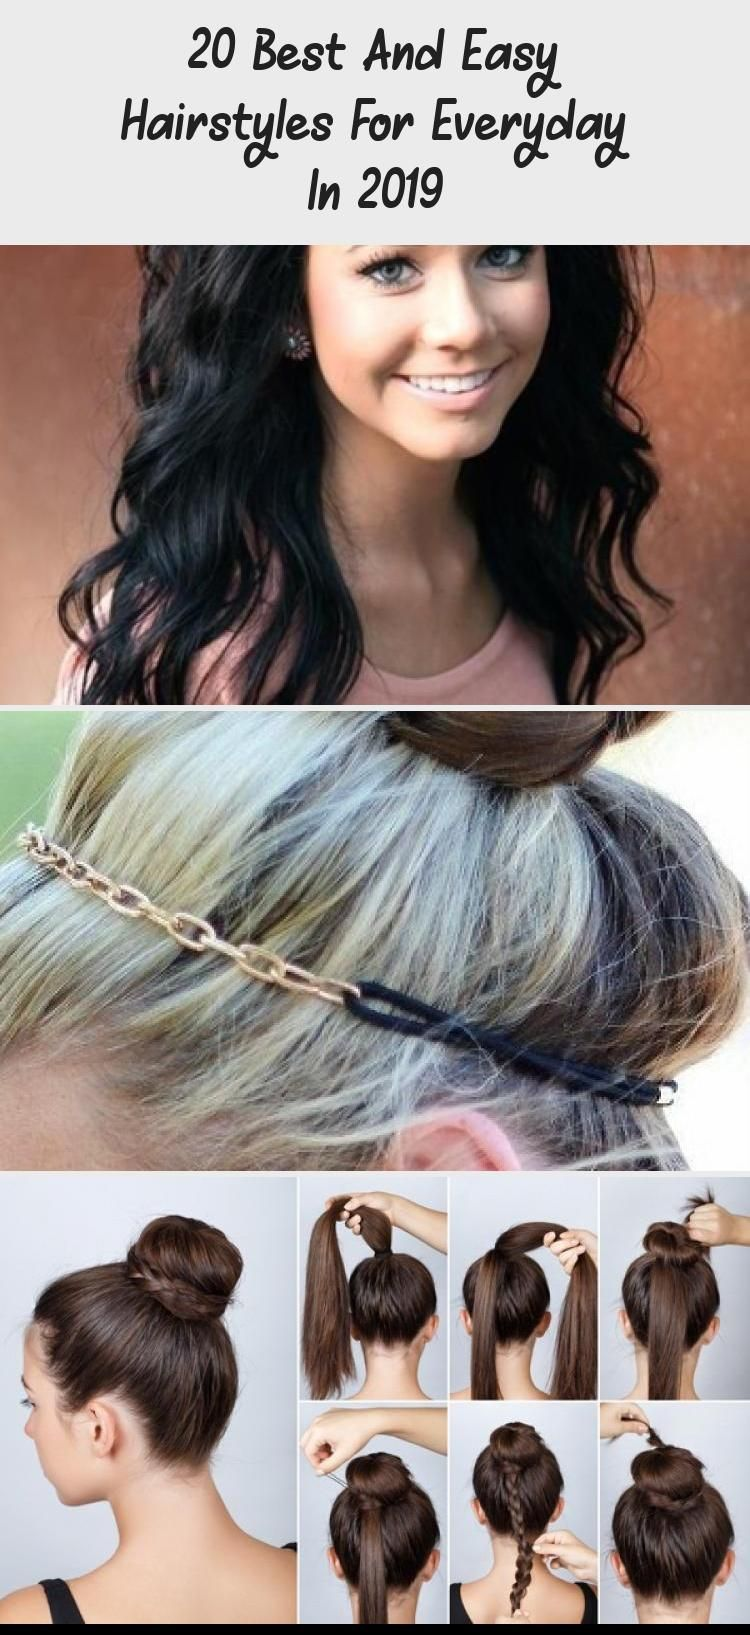 20 Best And Easy Hairstyles For Everyday In 2019 Lina S Blog Top 17 Casual Hairstyles For Everyday E In 2020 Easy Everyday Hairstyles Easy Hairstyles Hair Styles